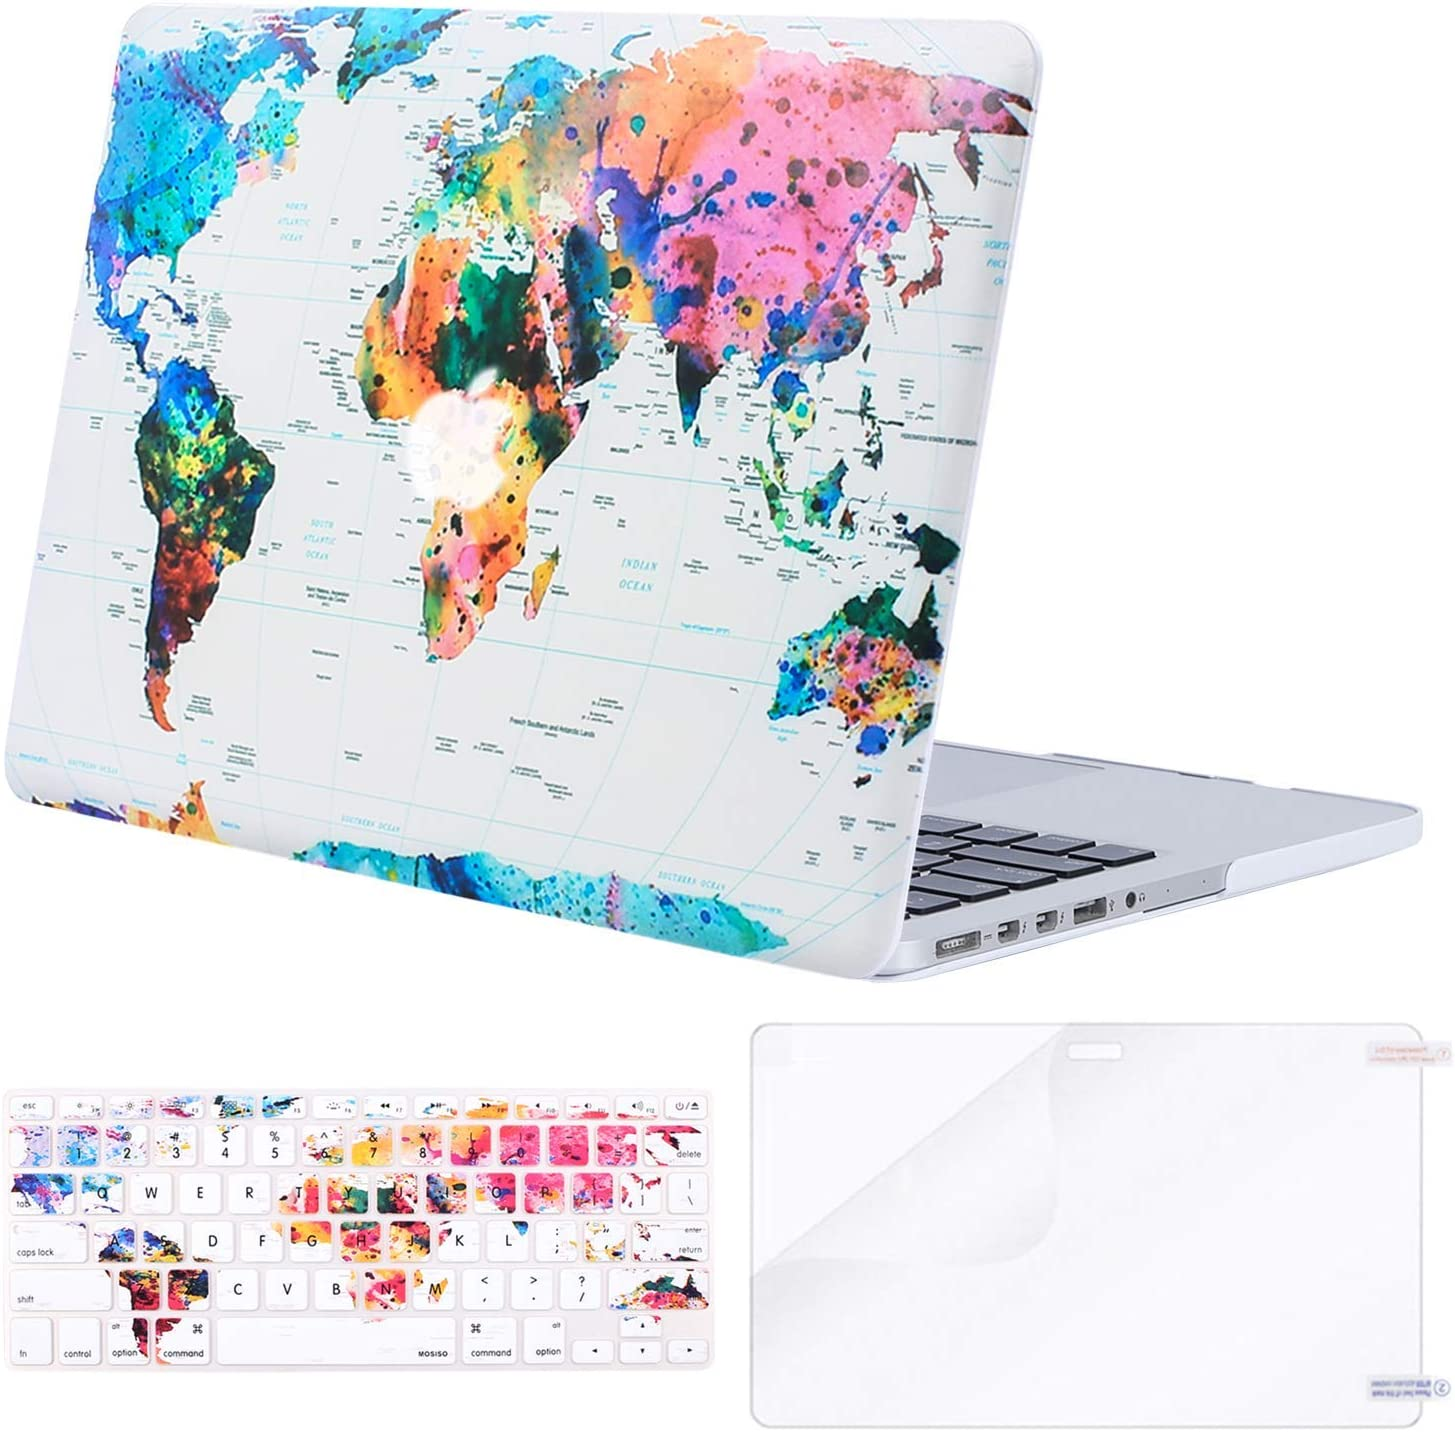 MOSISO MacBook Pro 15 inch Case (A1398, 2015 - end 2012 Release), Plastic Hard Shell & Keyboard Cover & Screen Protector Compatible with Older Version MacBook Pro Retina 15 inch, World Map White Base